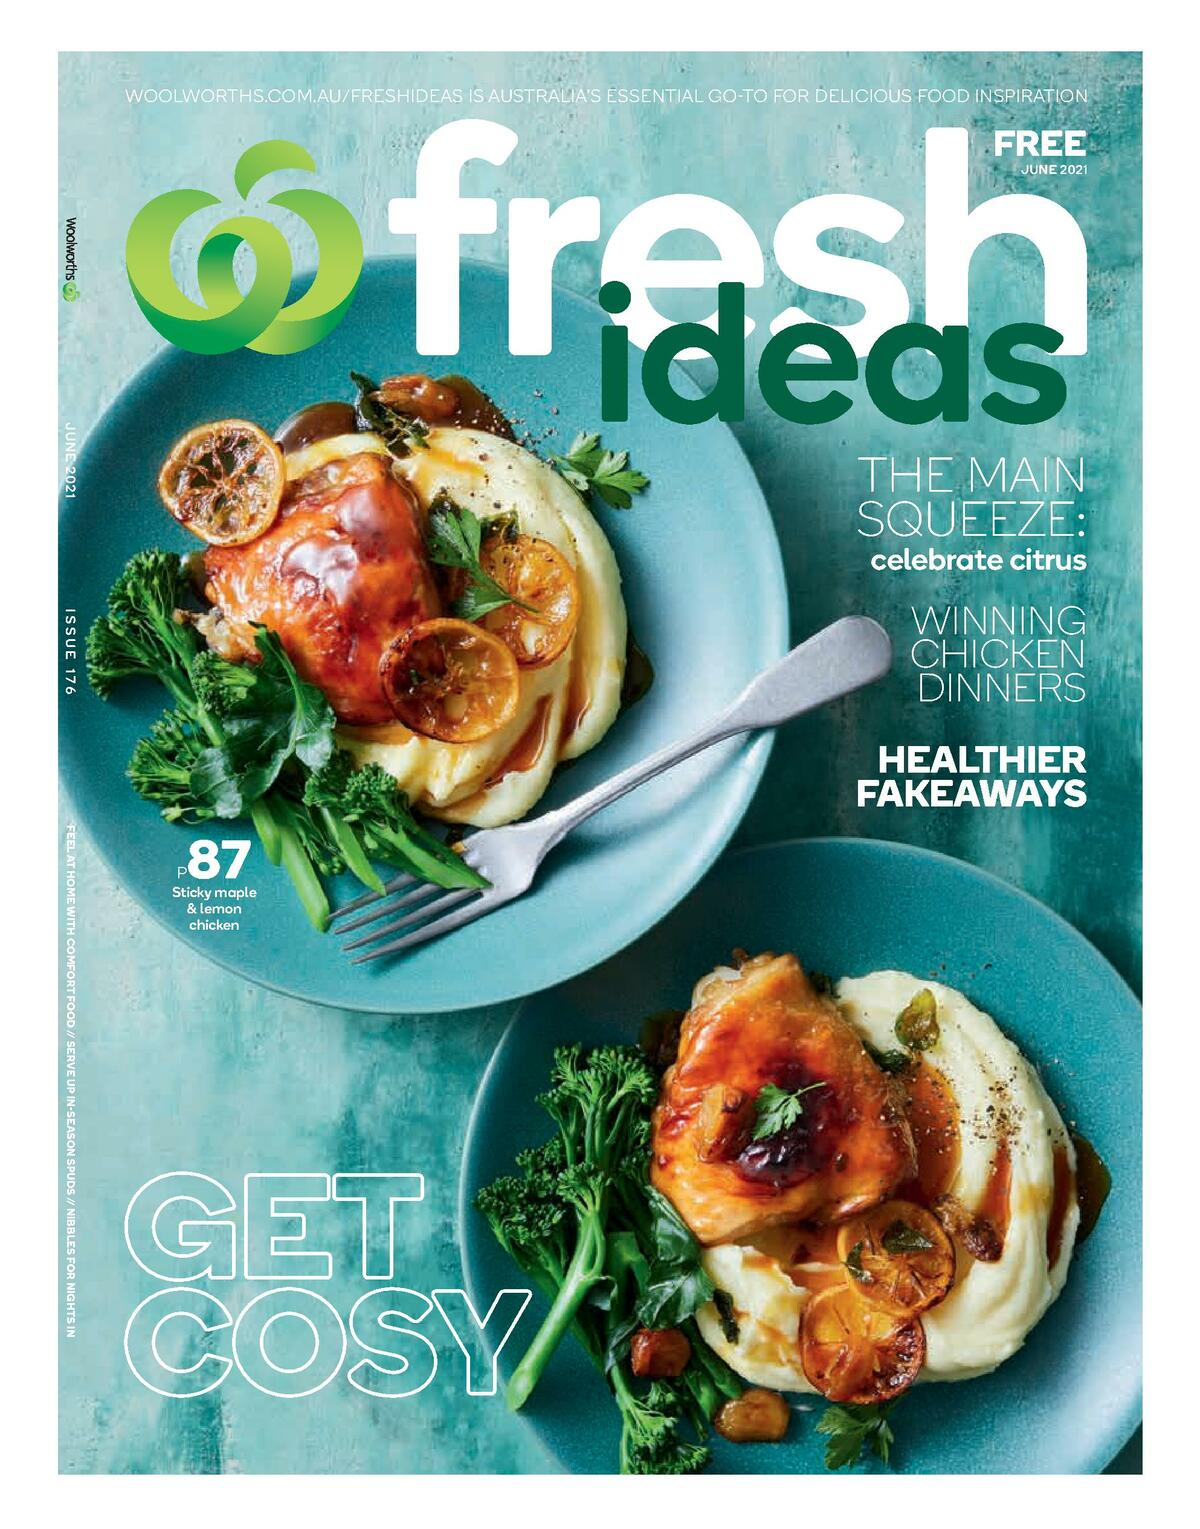 Woolworths Magazine June Catalogues from June 1